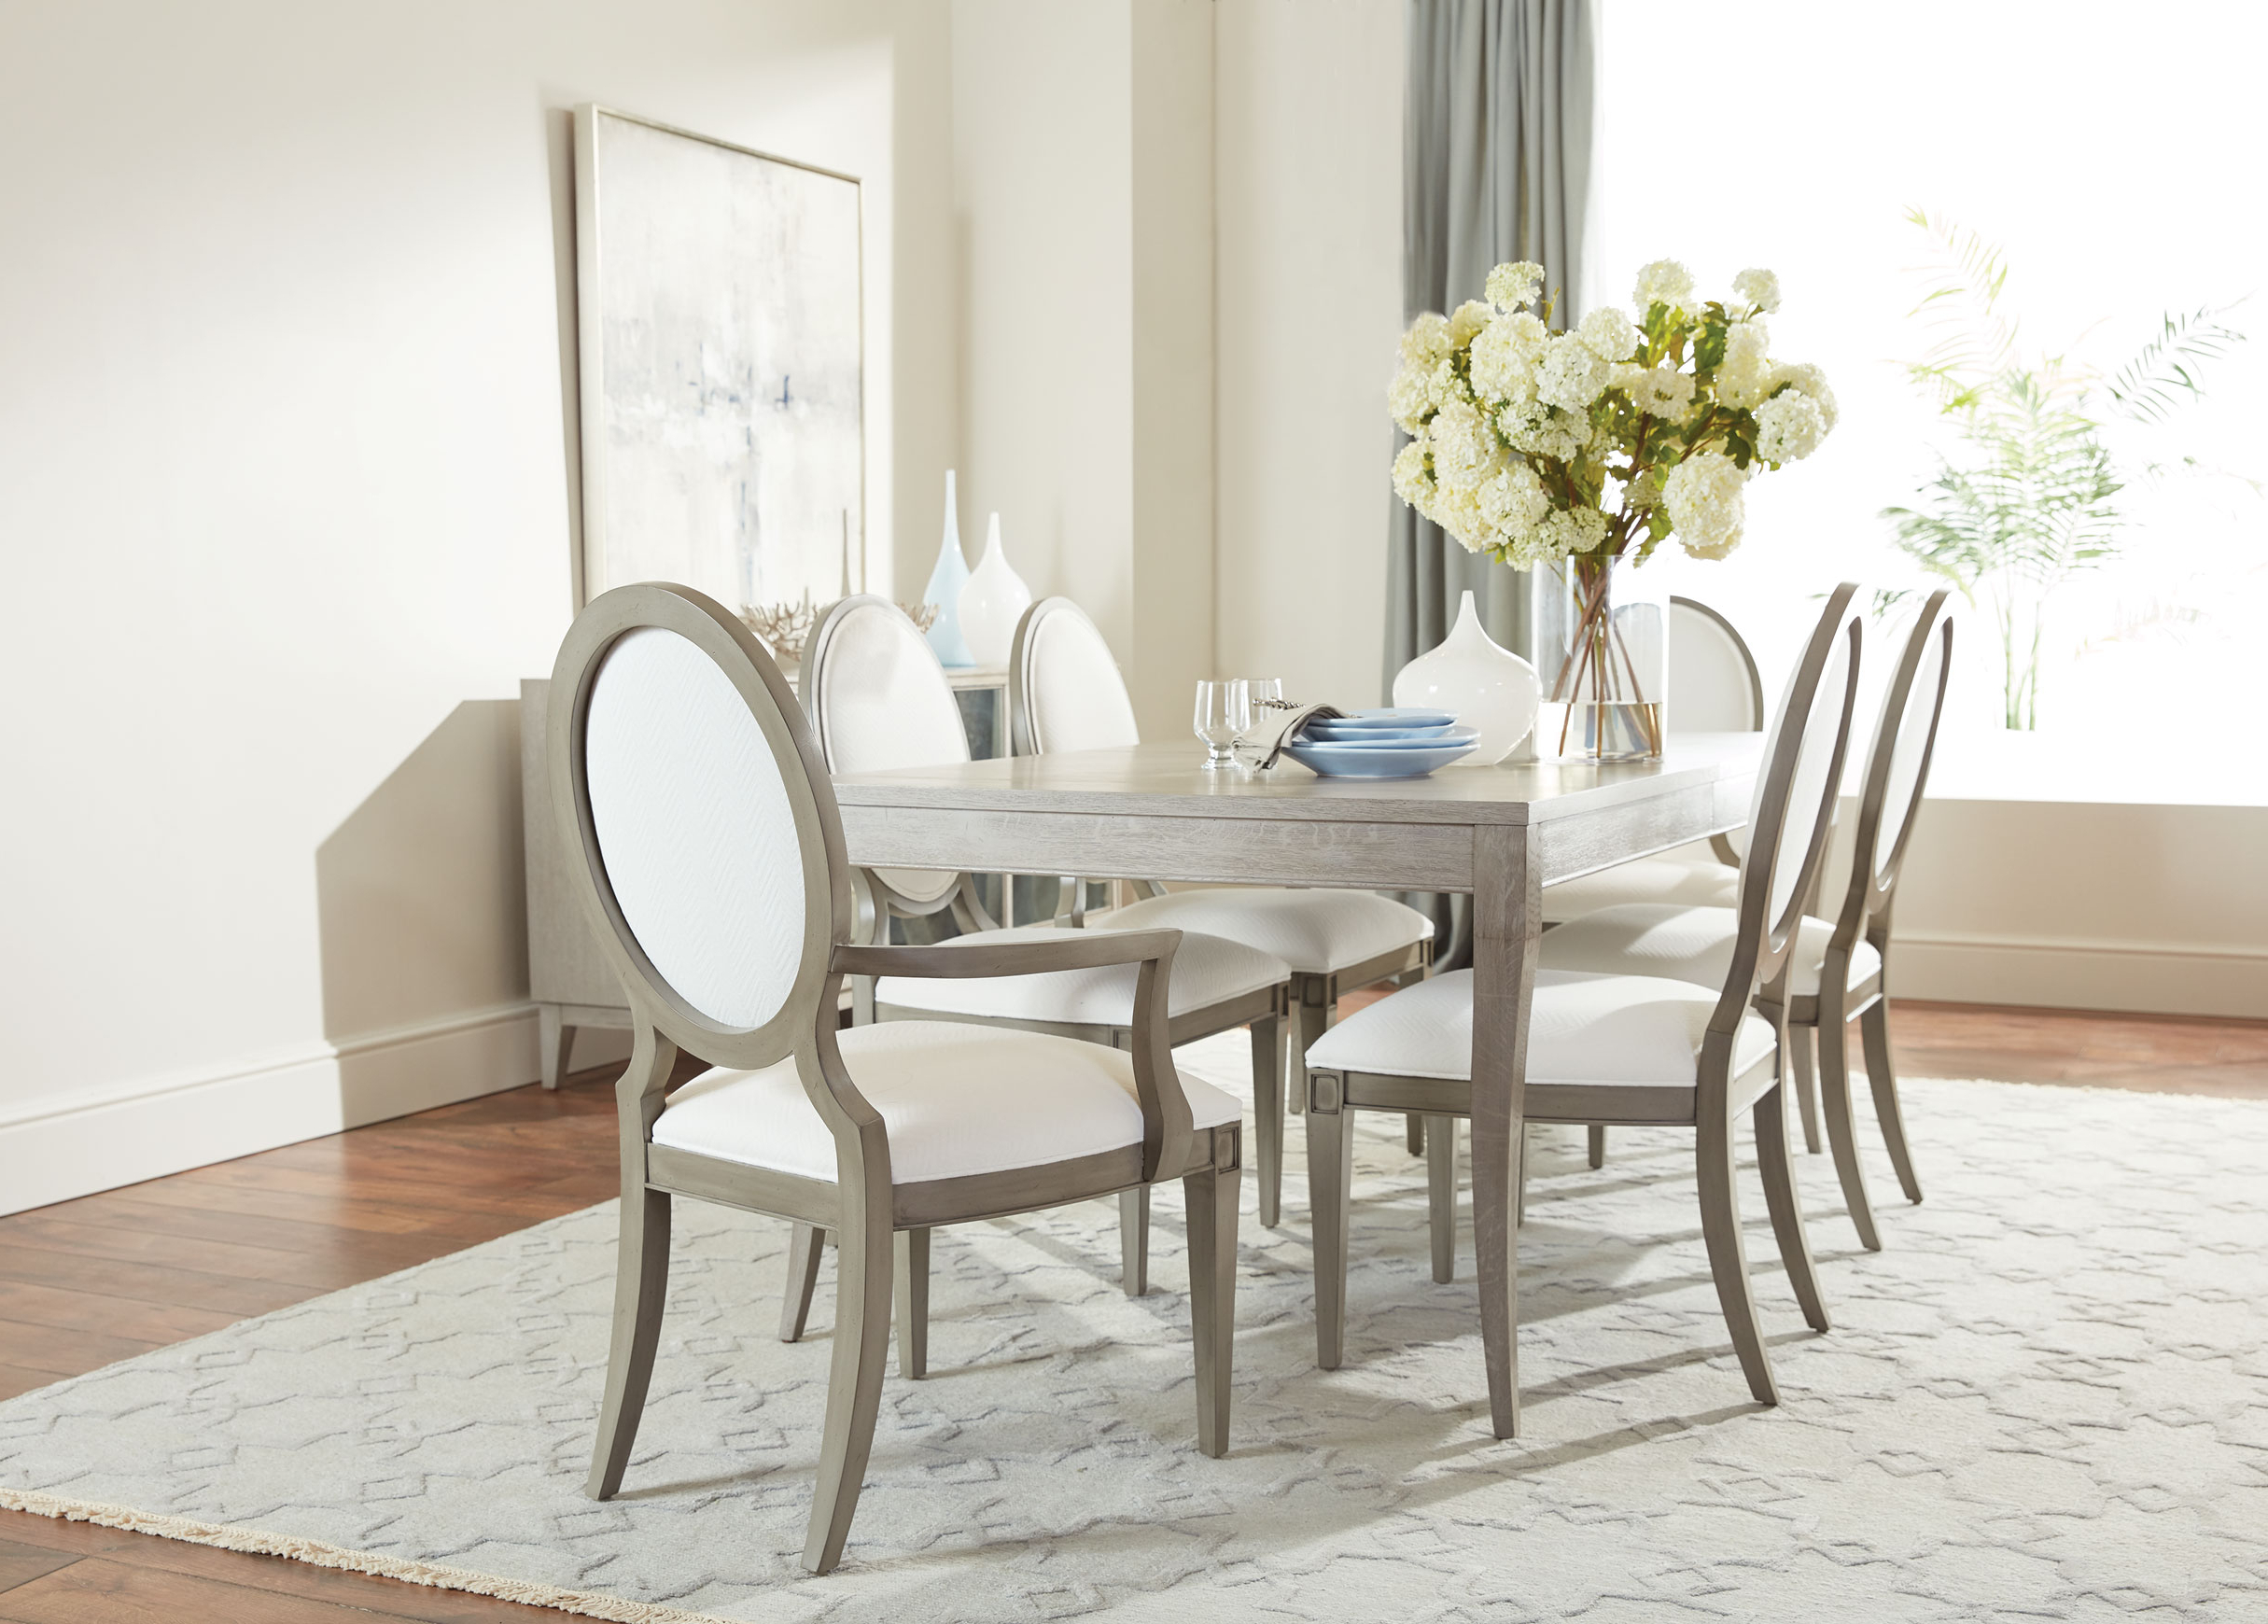 Latest Relaxed Modern Dining Room (View 17 of 25)